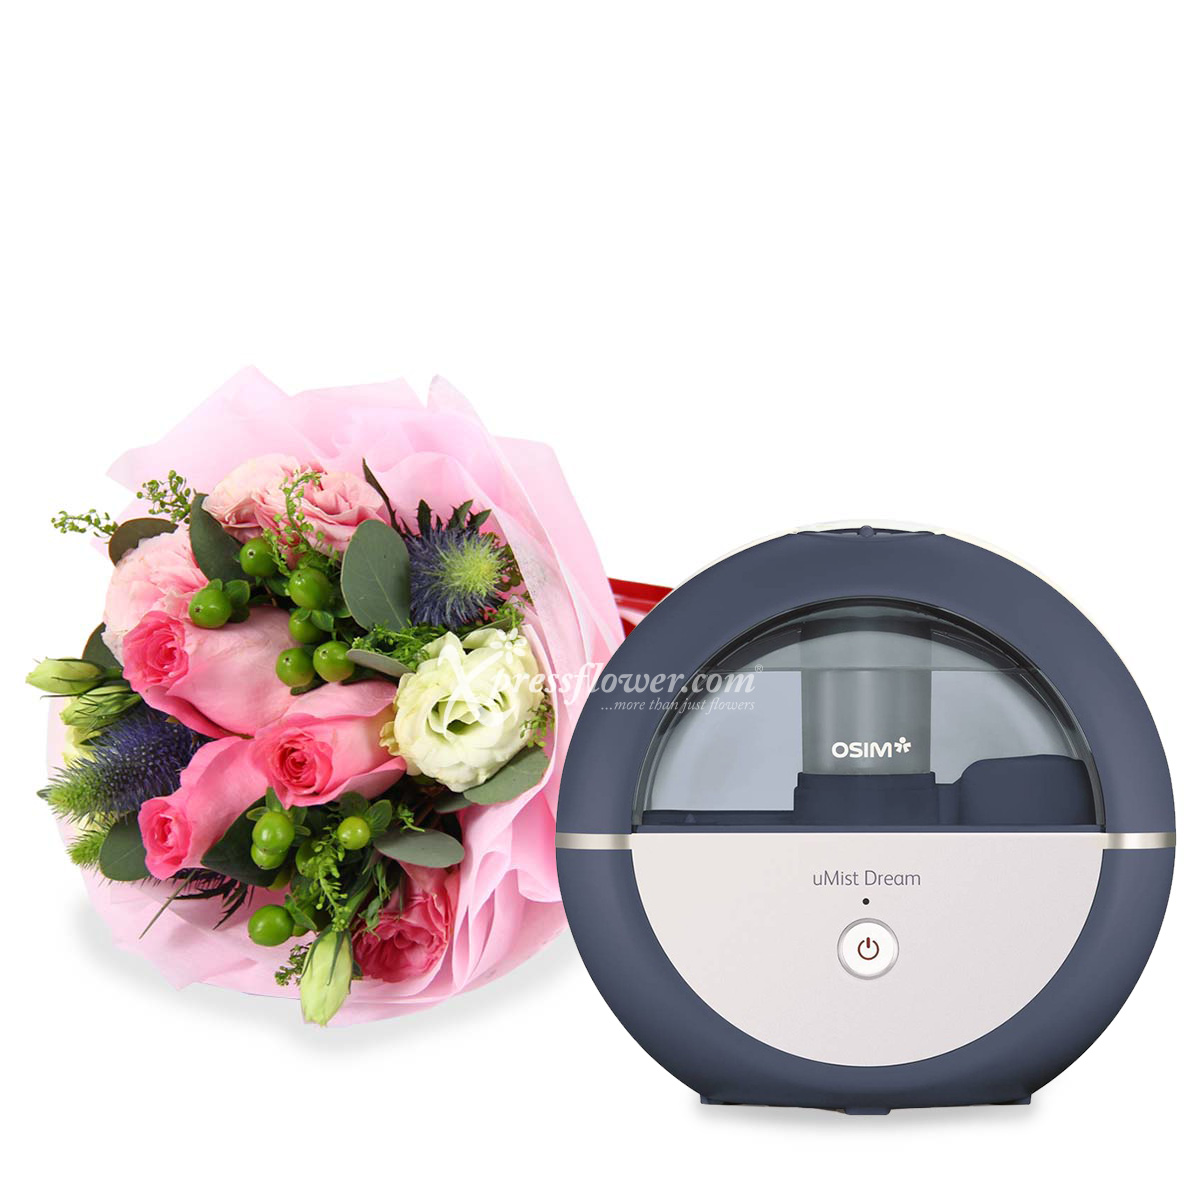 OS1804 uMist Dream Air Humidifier